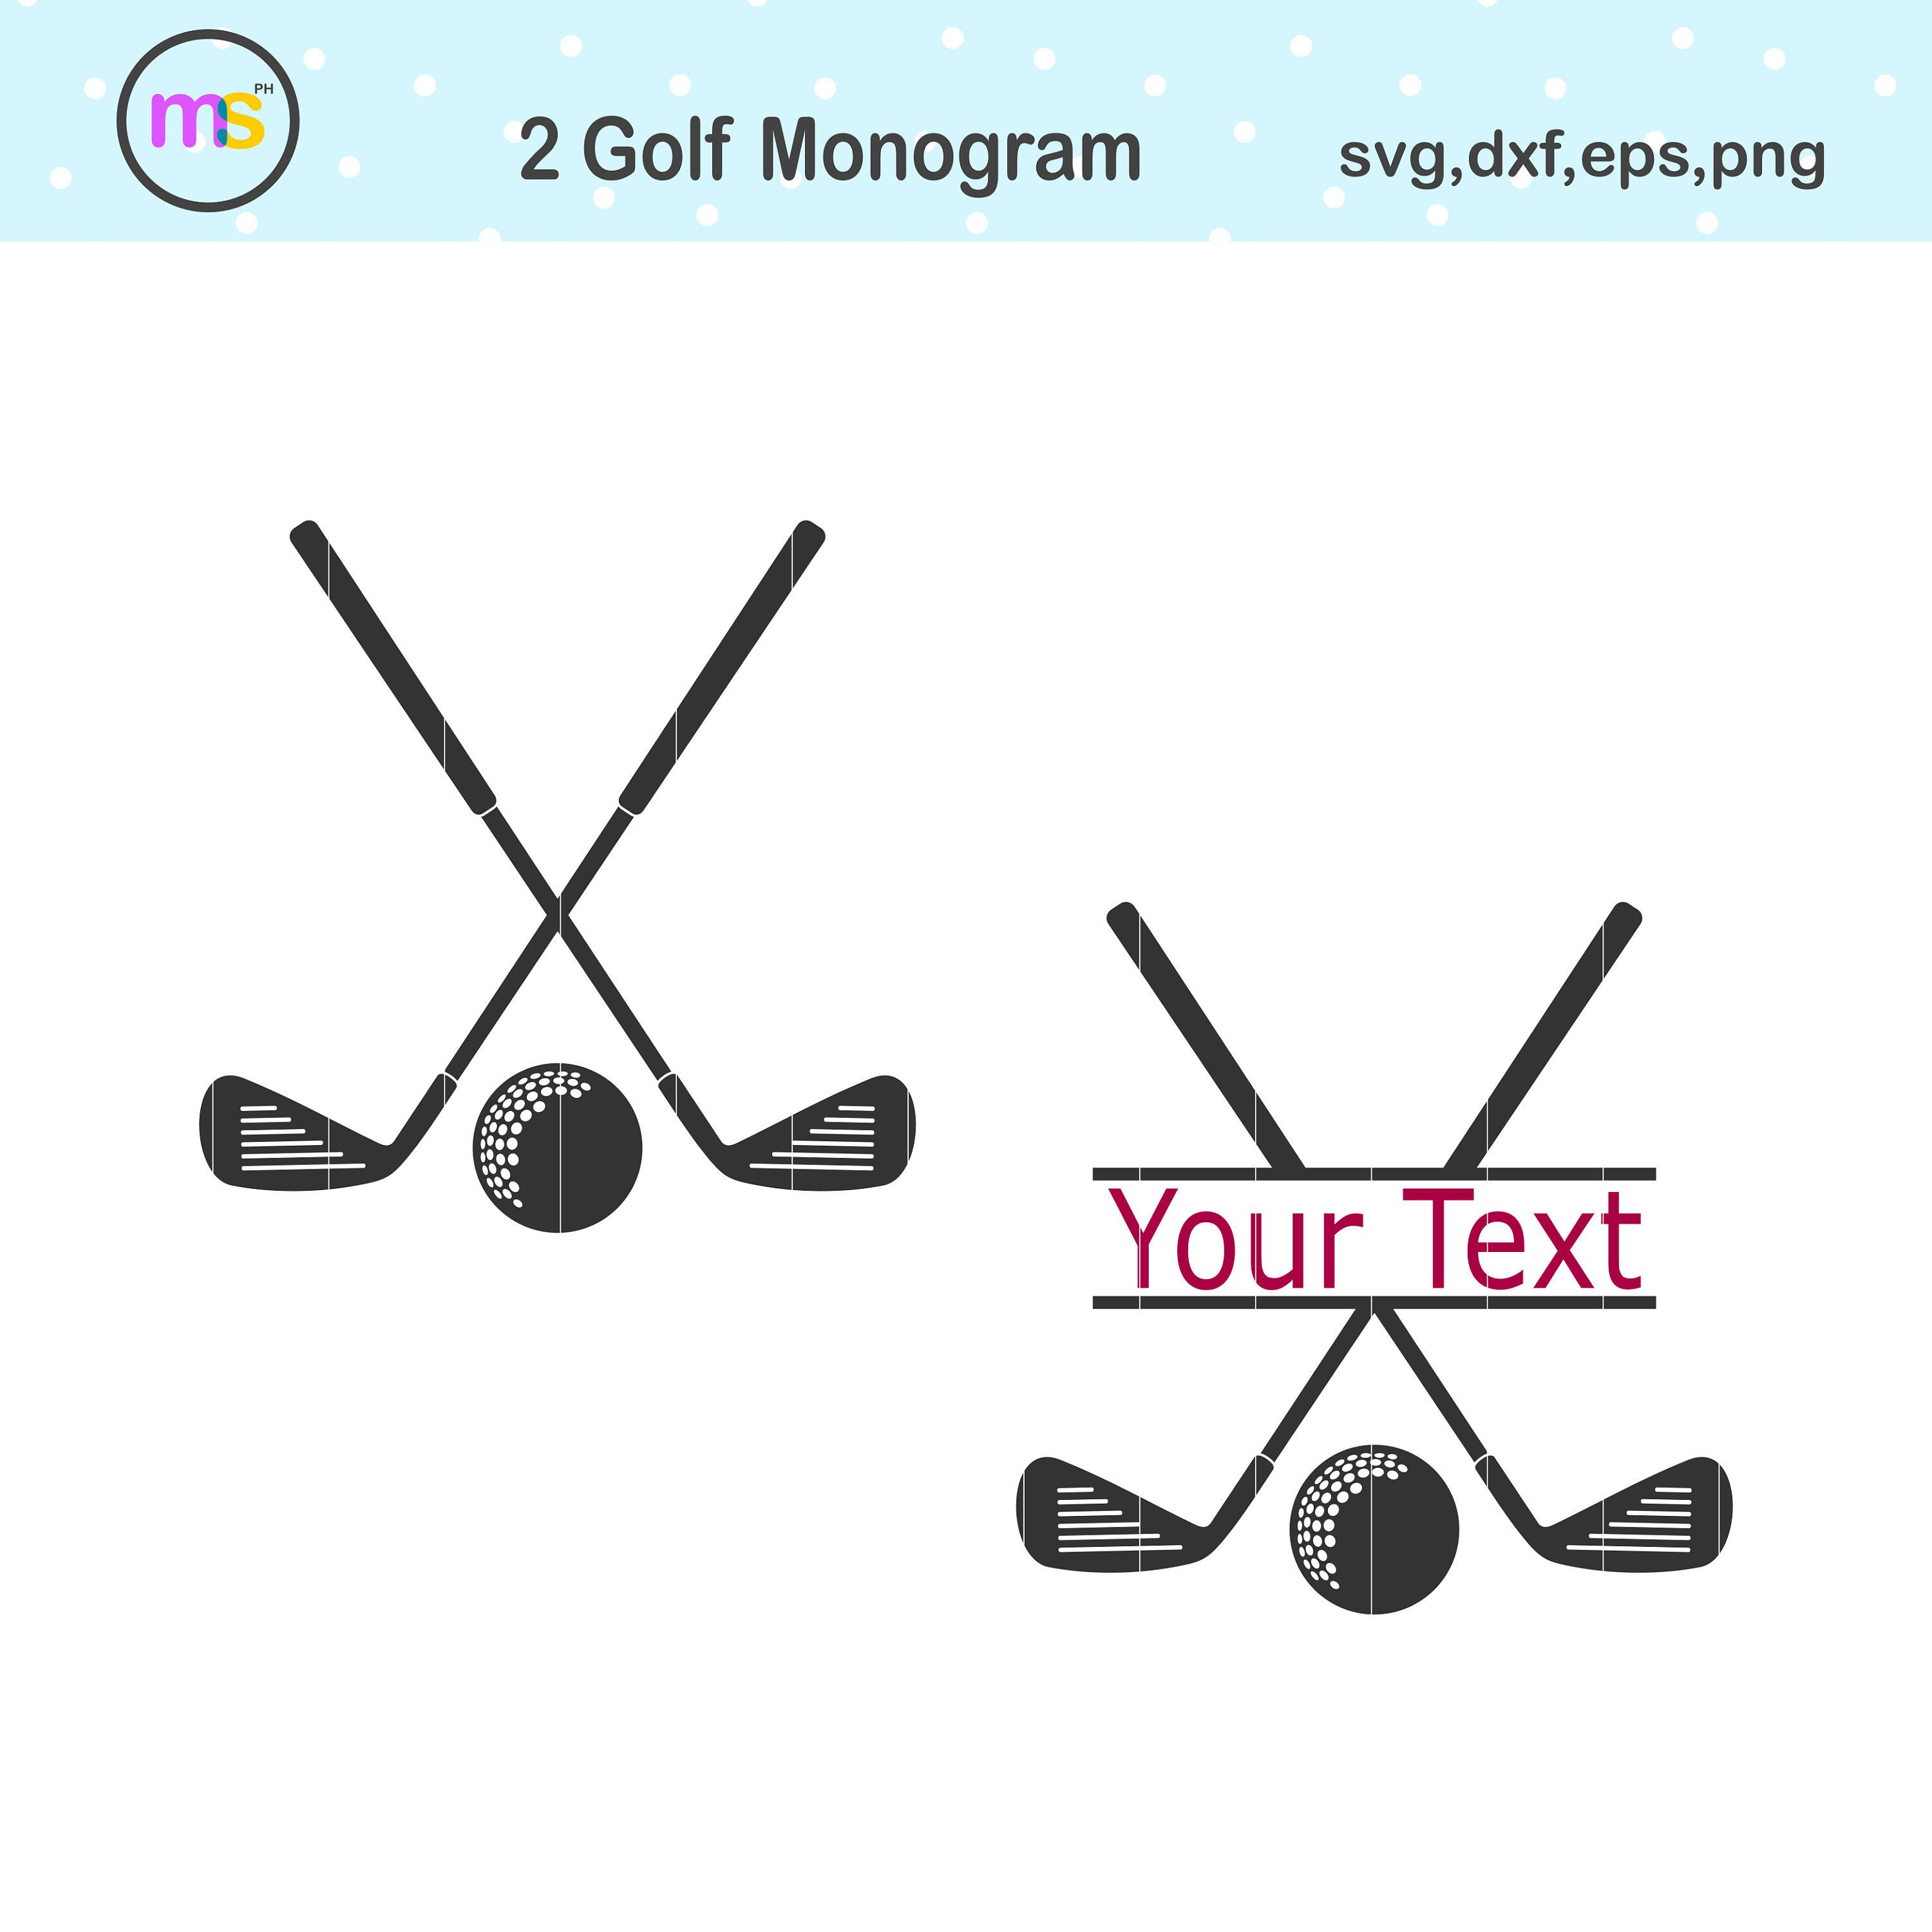 Golf Svg Golf Monogram Svg Golf Club Svg Golf Monogram Etsy In 2020 Golf Monogram Monogram Svg Golf Prints